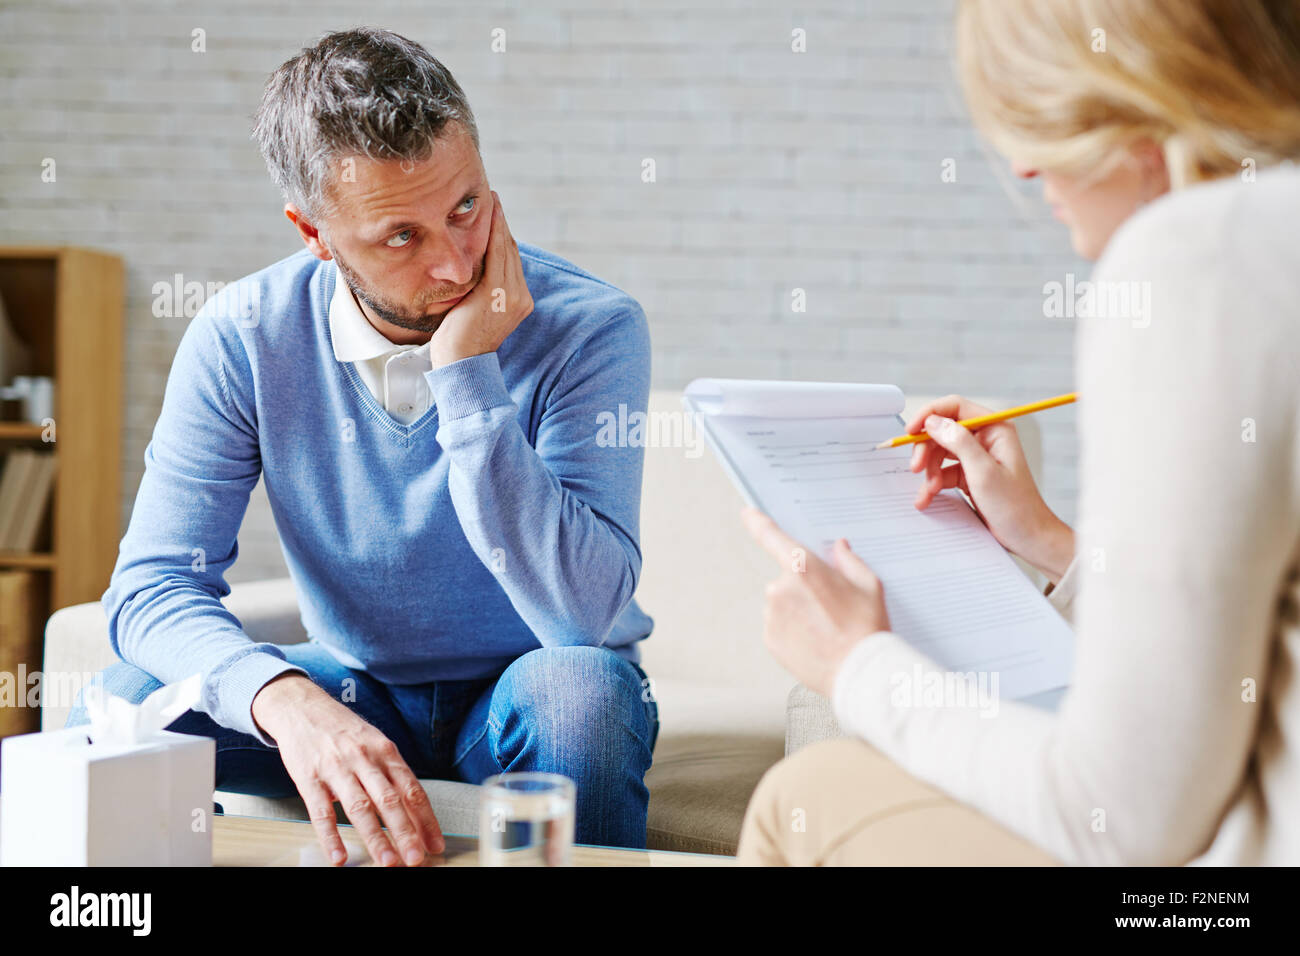 Tense man looking at his psychologist during consultation - Stock Image